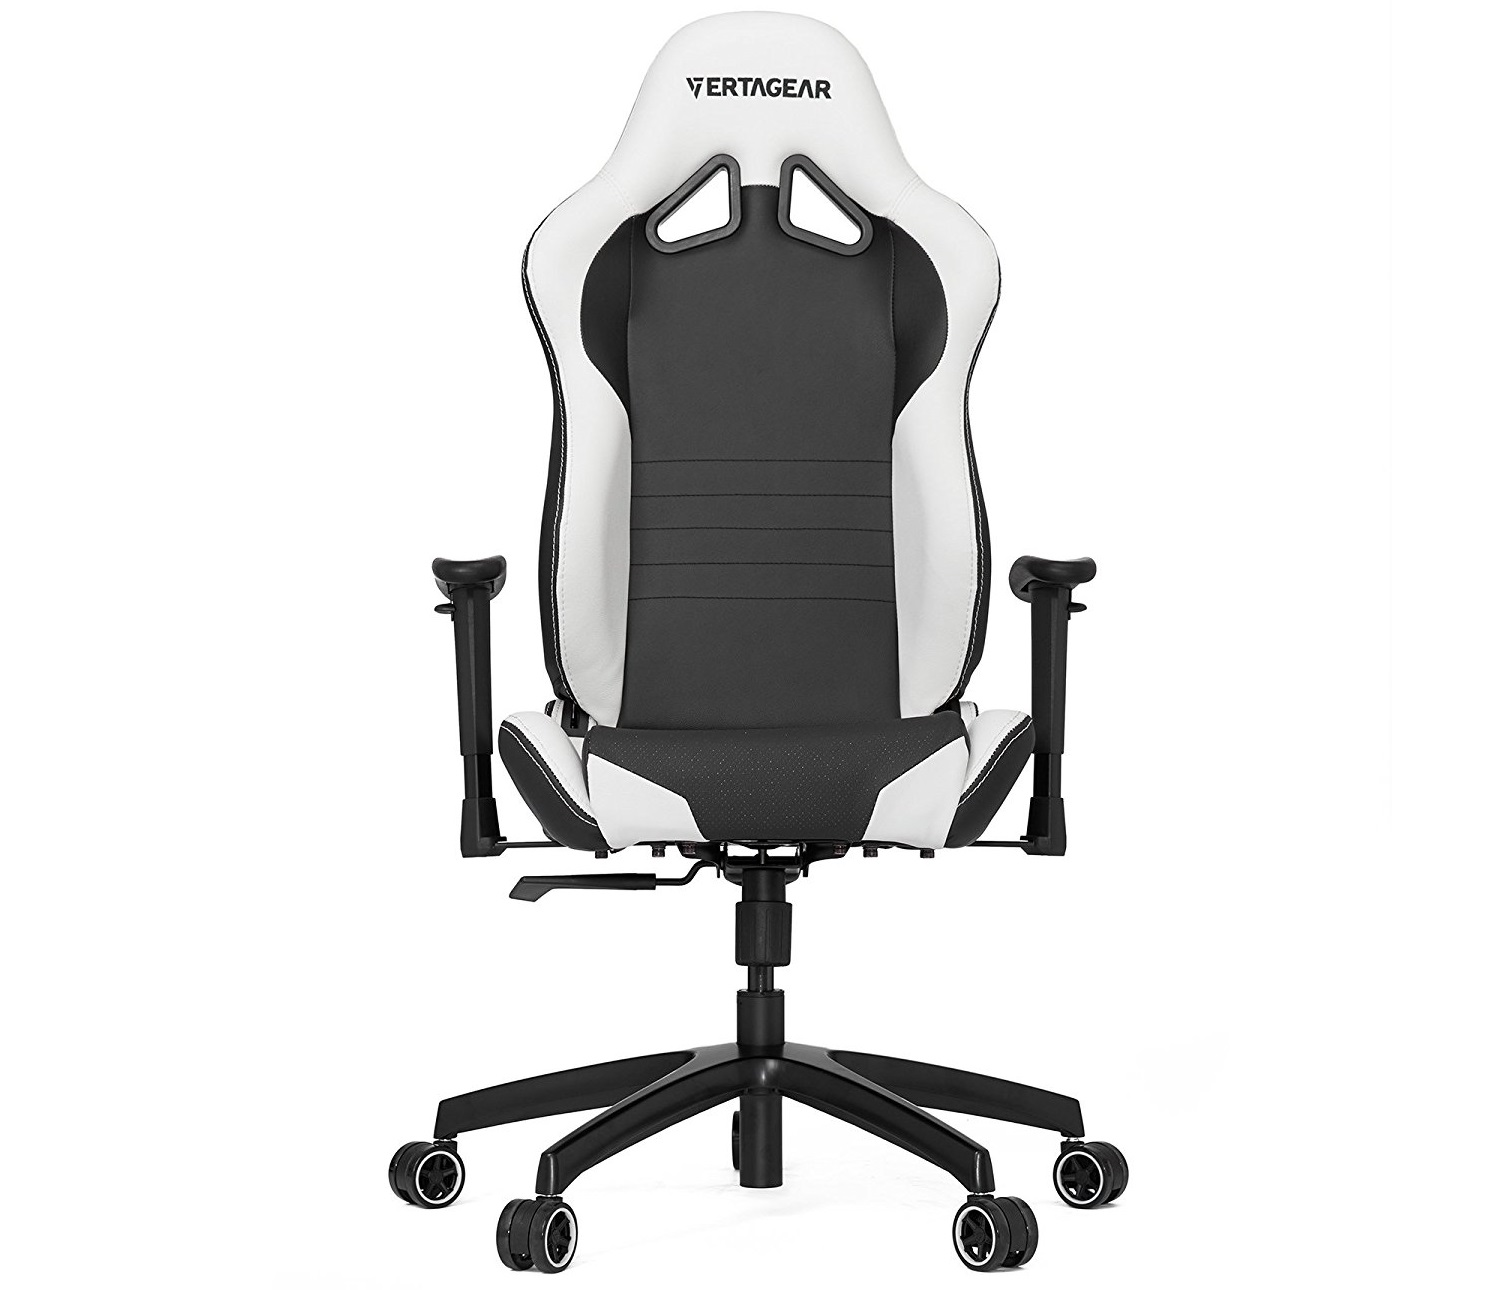 Best Gaming Chair 6 puter Chairs Tested & Reviewed in 2017